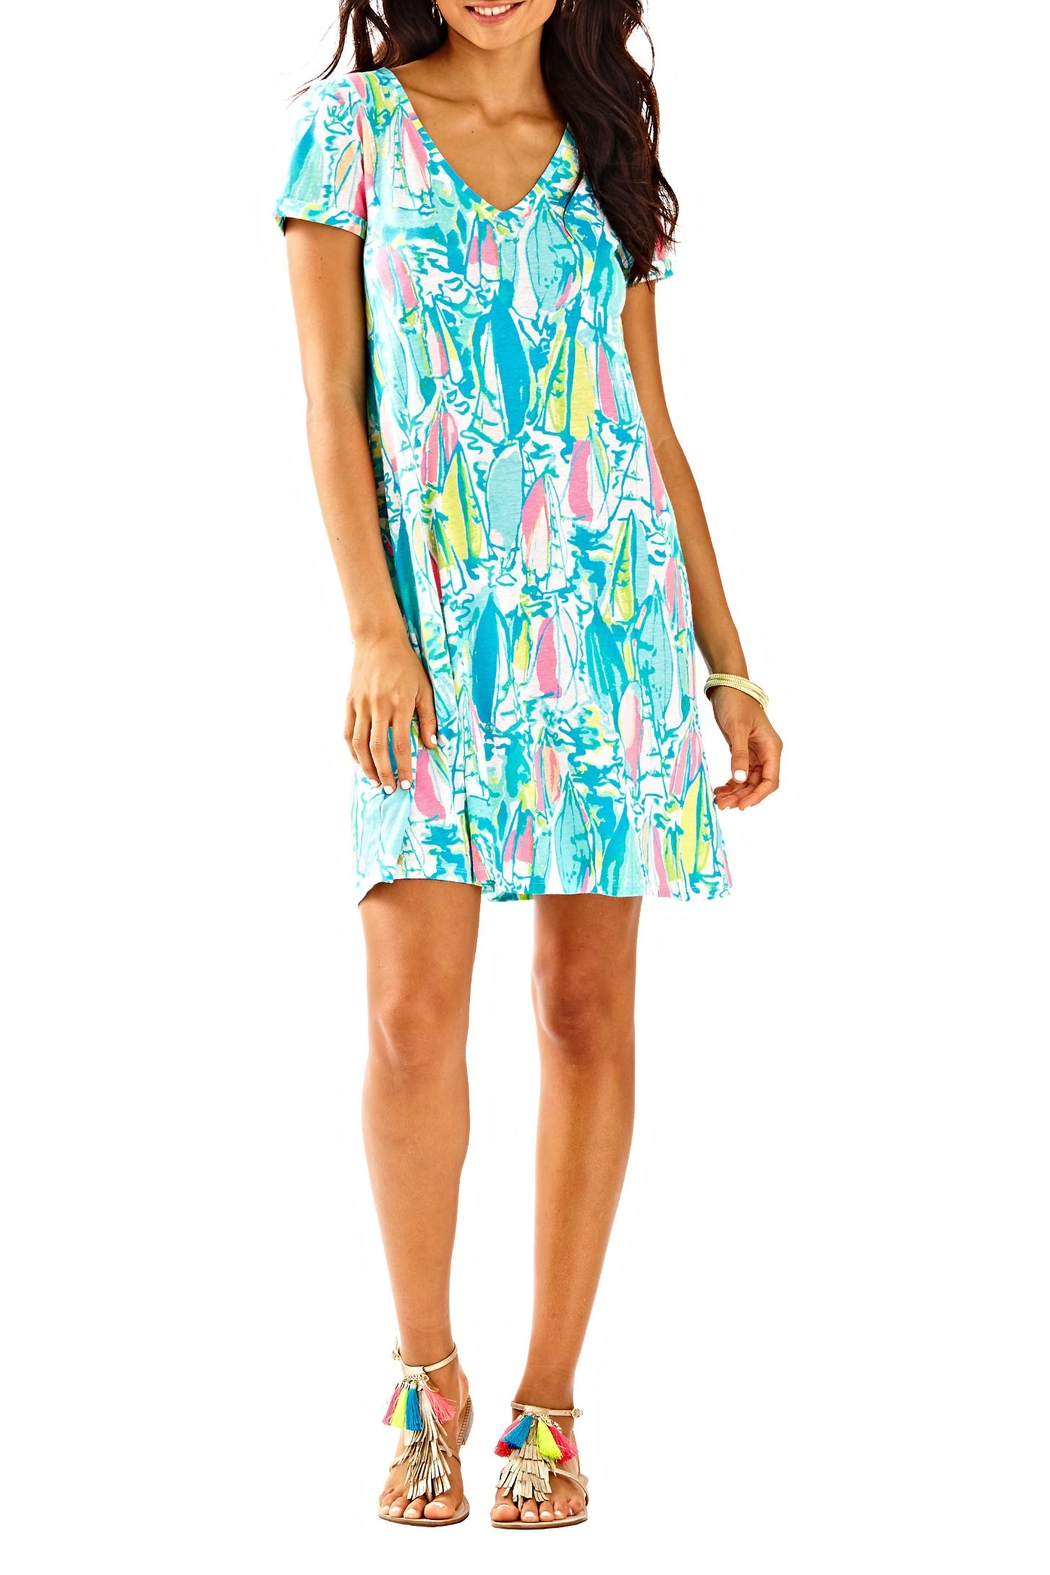 Lilly Pulitzer Short-Sleeve Dress - Back Cropped Image